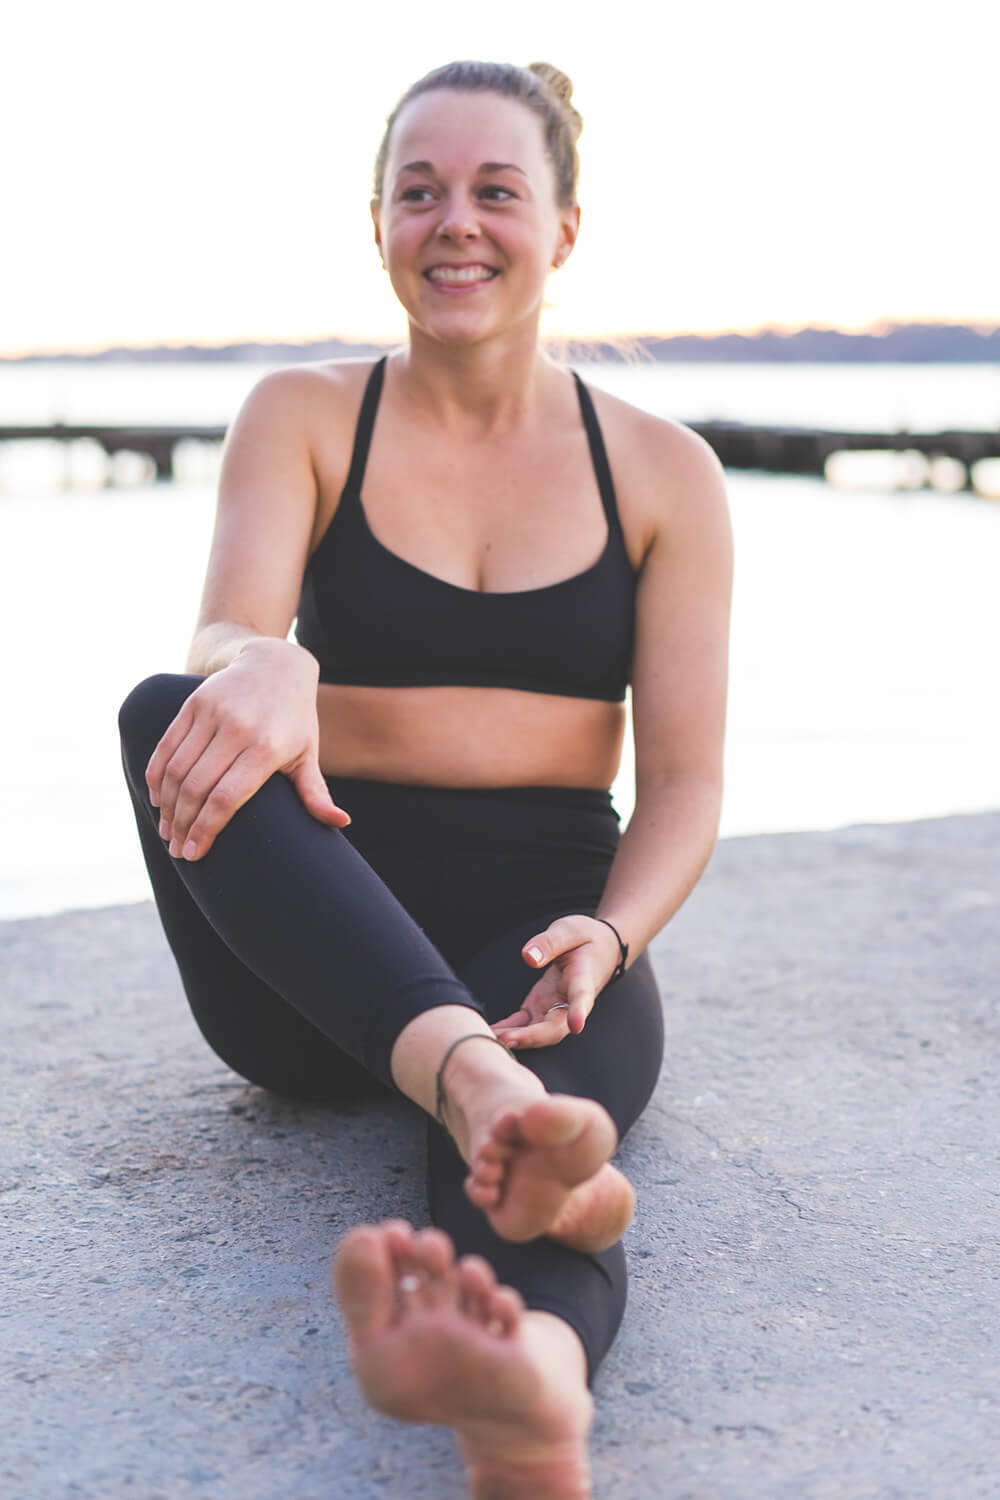 Clare_Young_Yoga about image